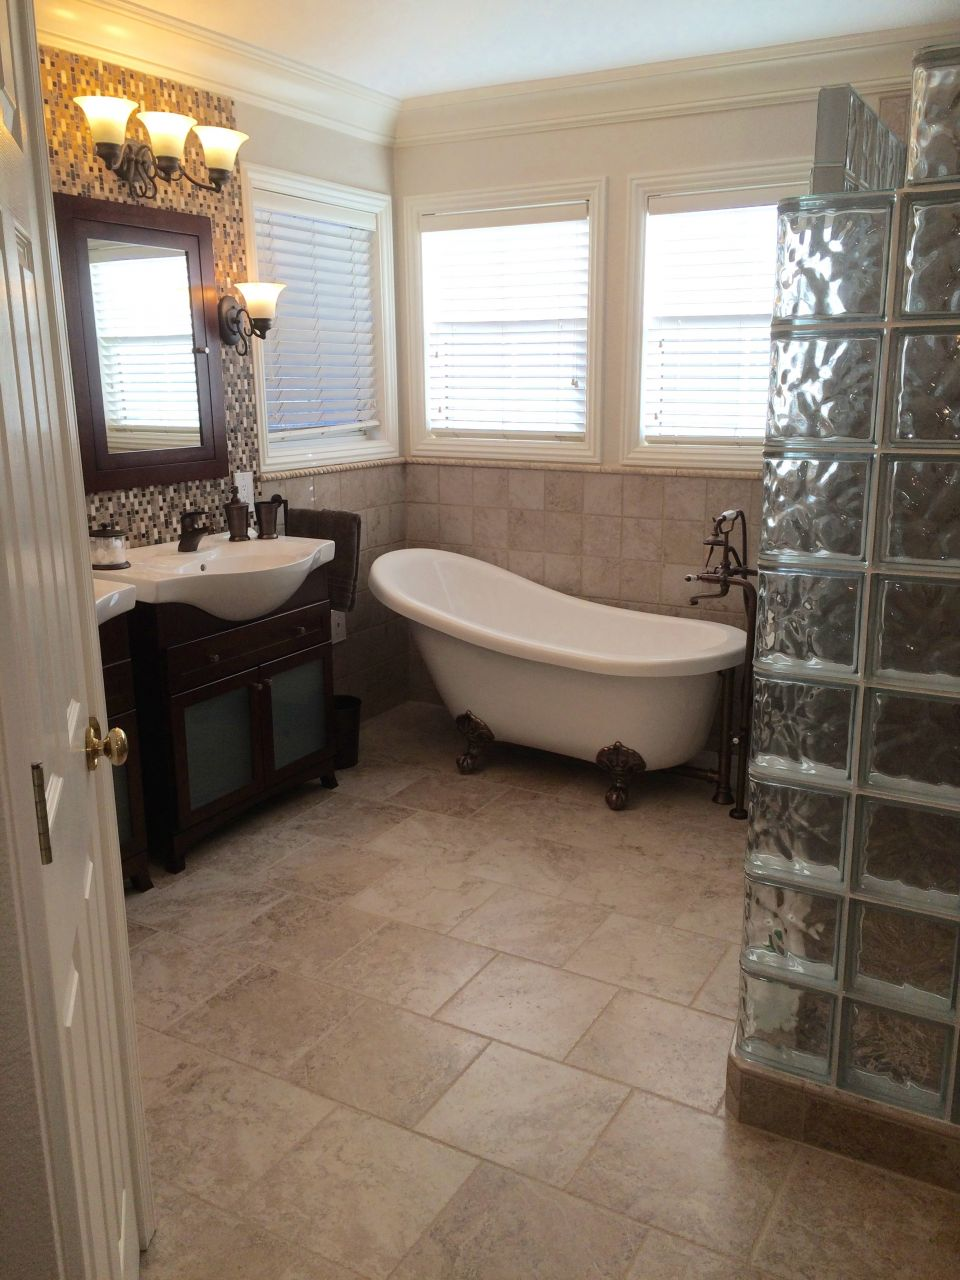 Bathroom Remodel Homewyse 5 out of the box remodeling tips for a master bathroom in martinez